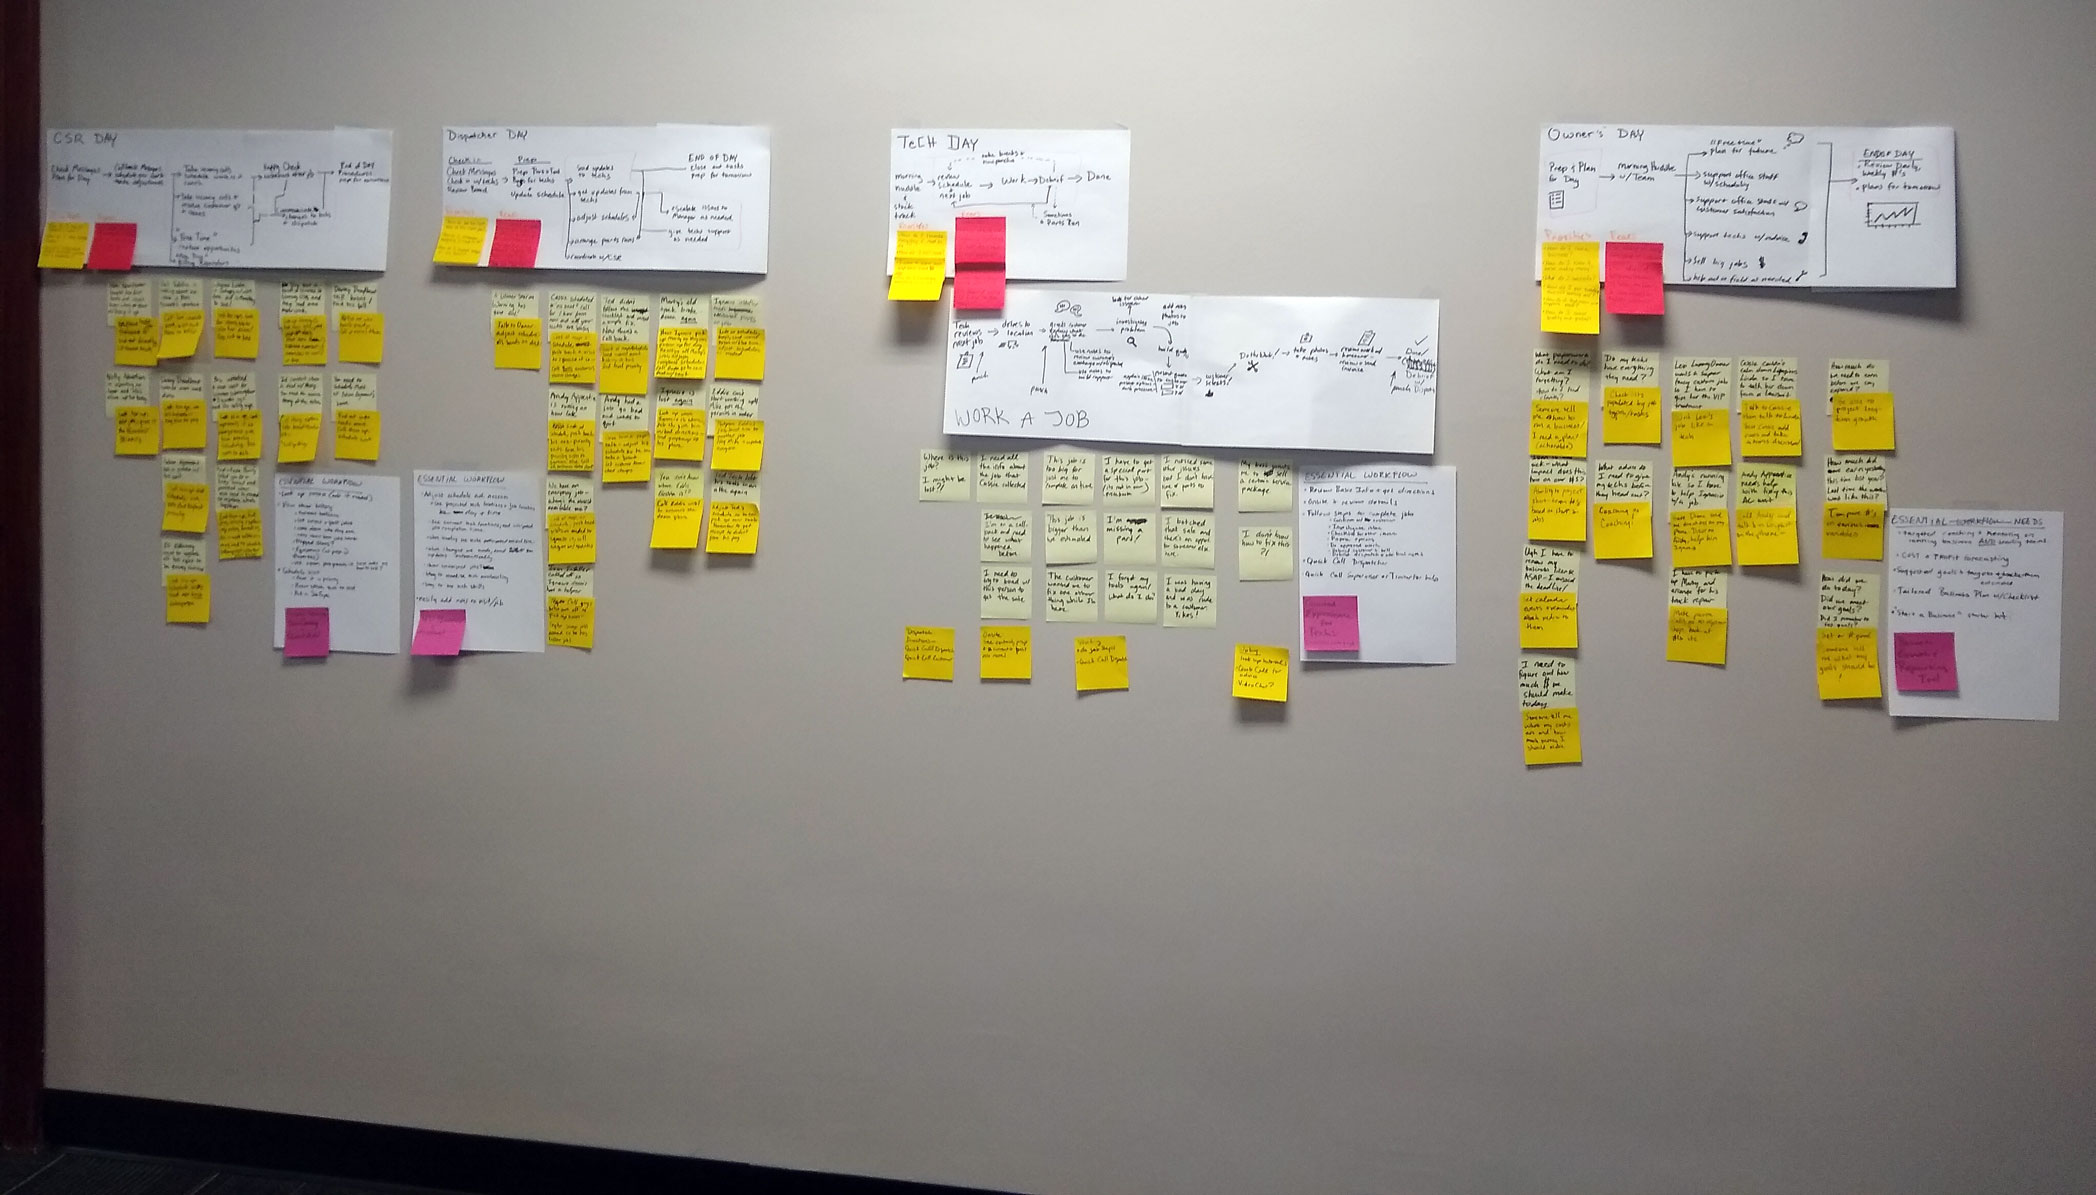 photo documenting task analysis of various target user's work flows